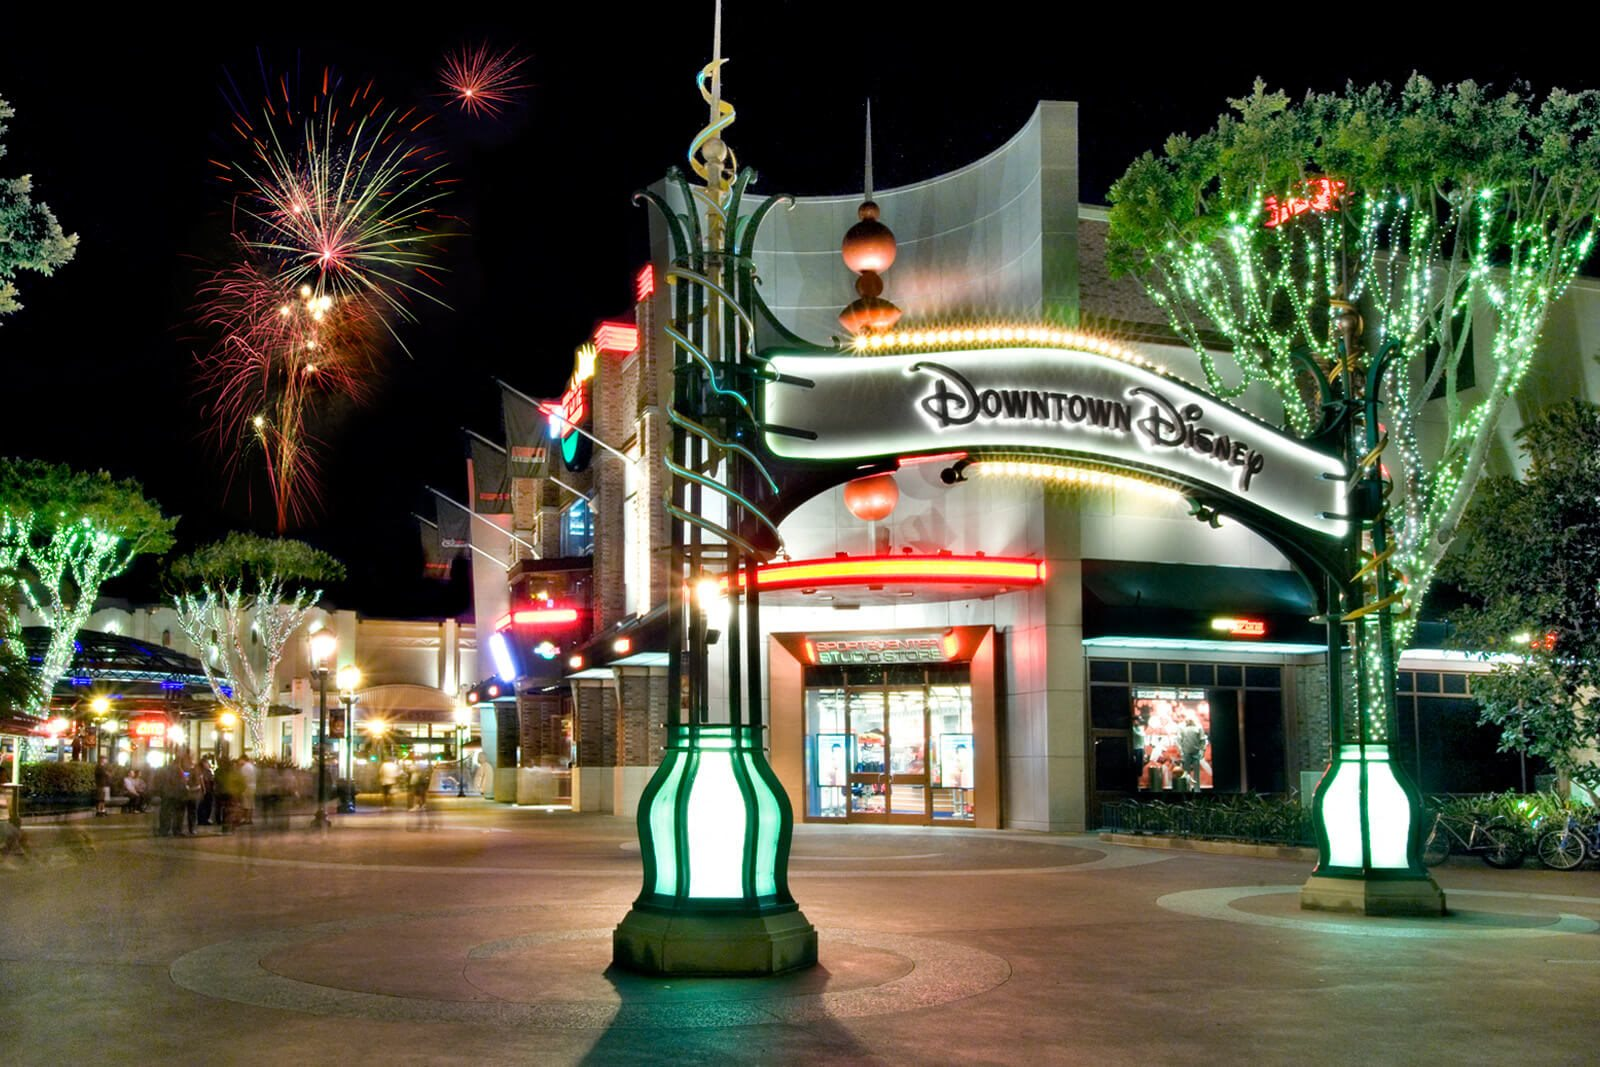 Enjoy the fireworks at Downtown Disney near Windsor at Main Place, 92868, CA